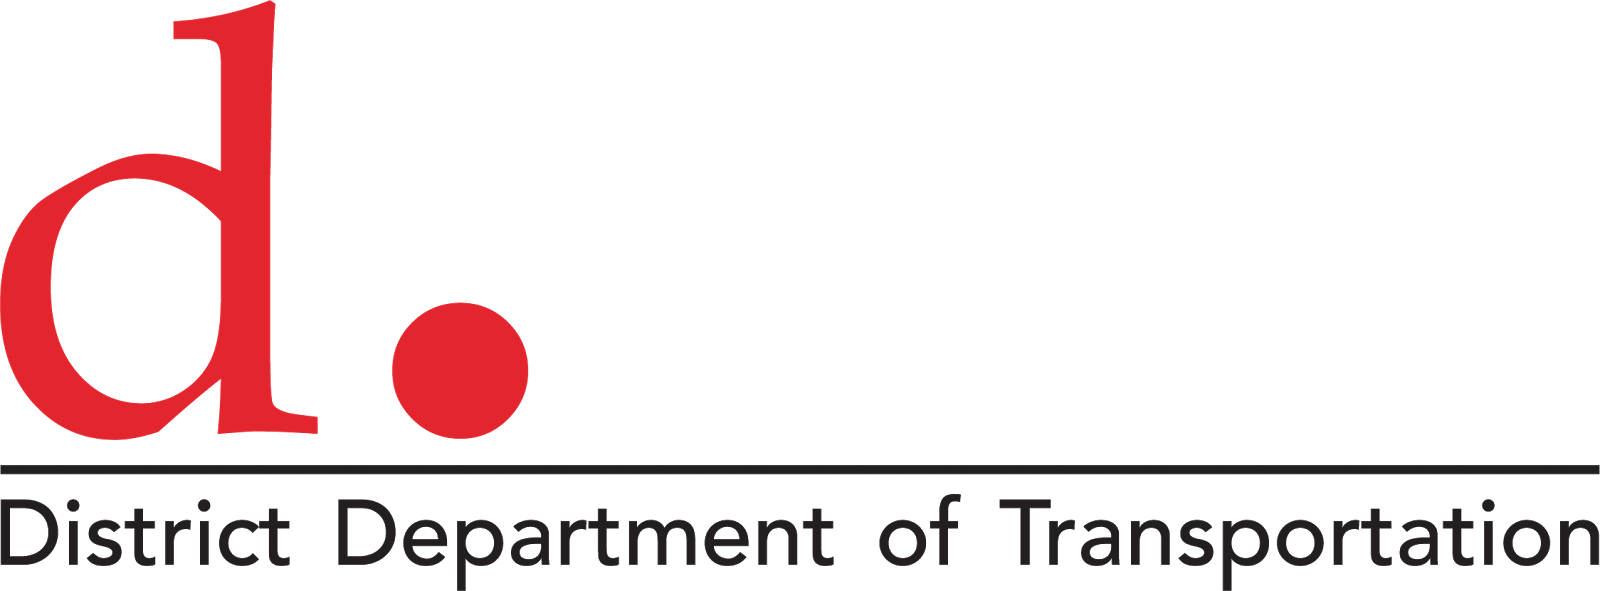 "District Department of Transportation Logo showing a red letter D and a large dot atop a horizontal line and the words ""District Department of Transportation"" below"